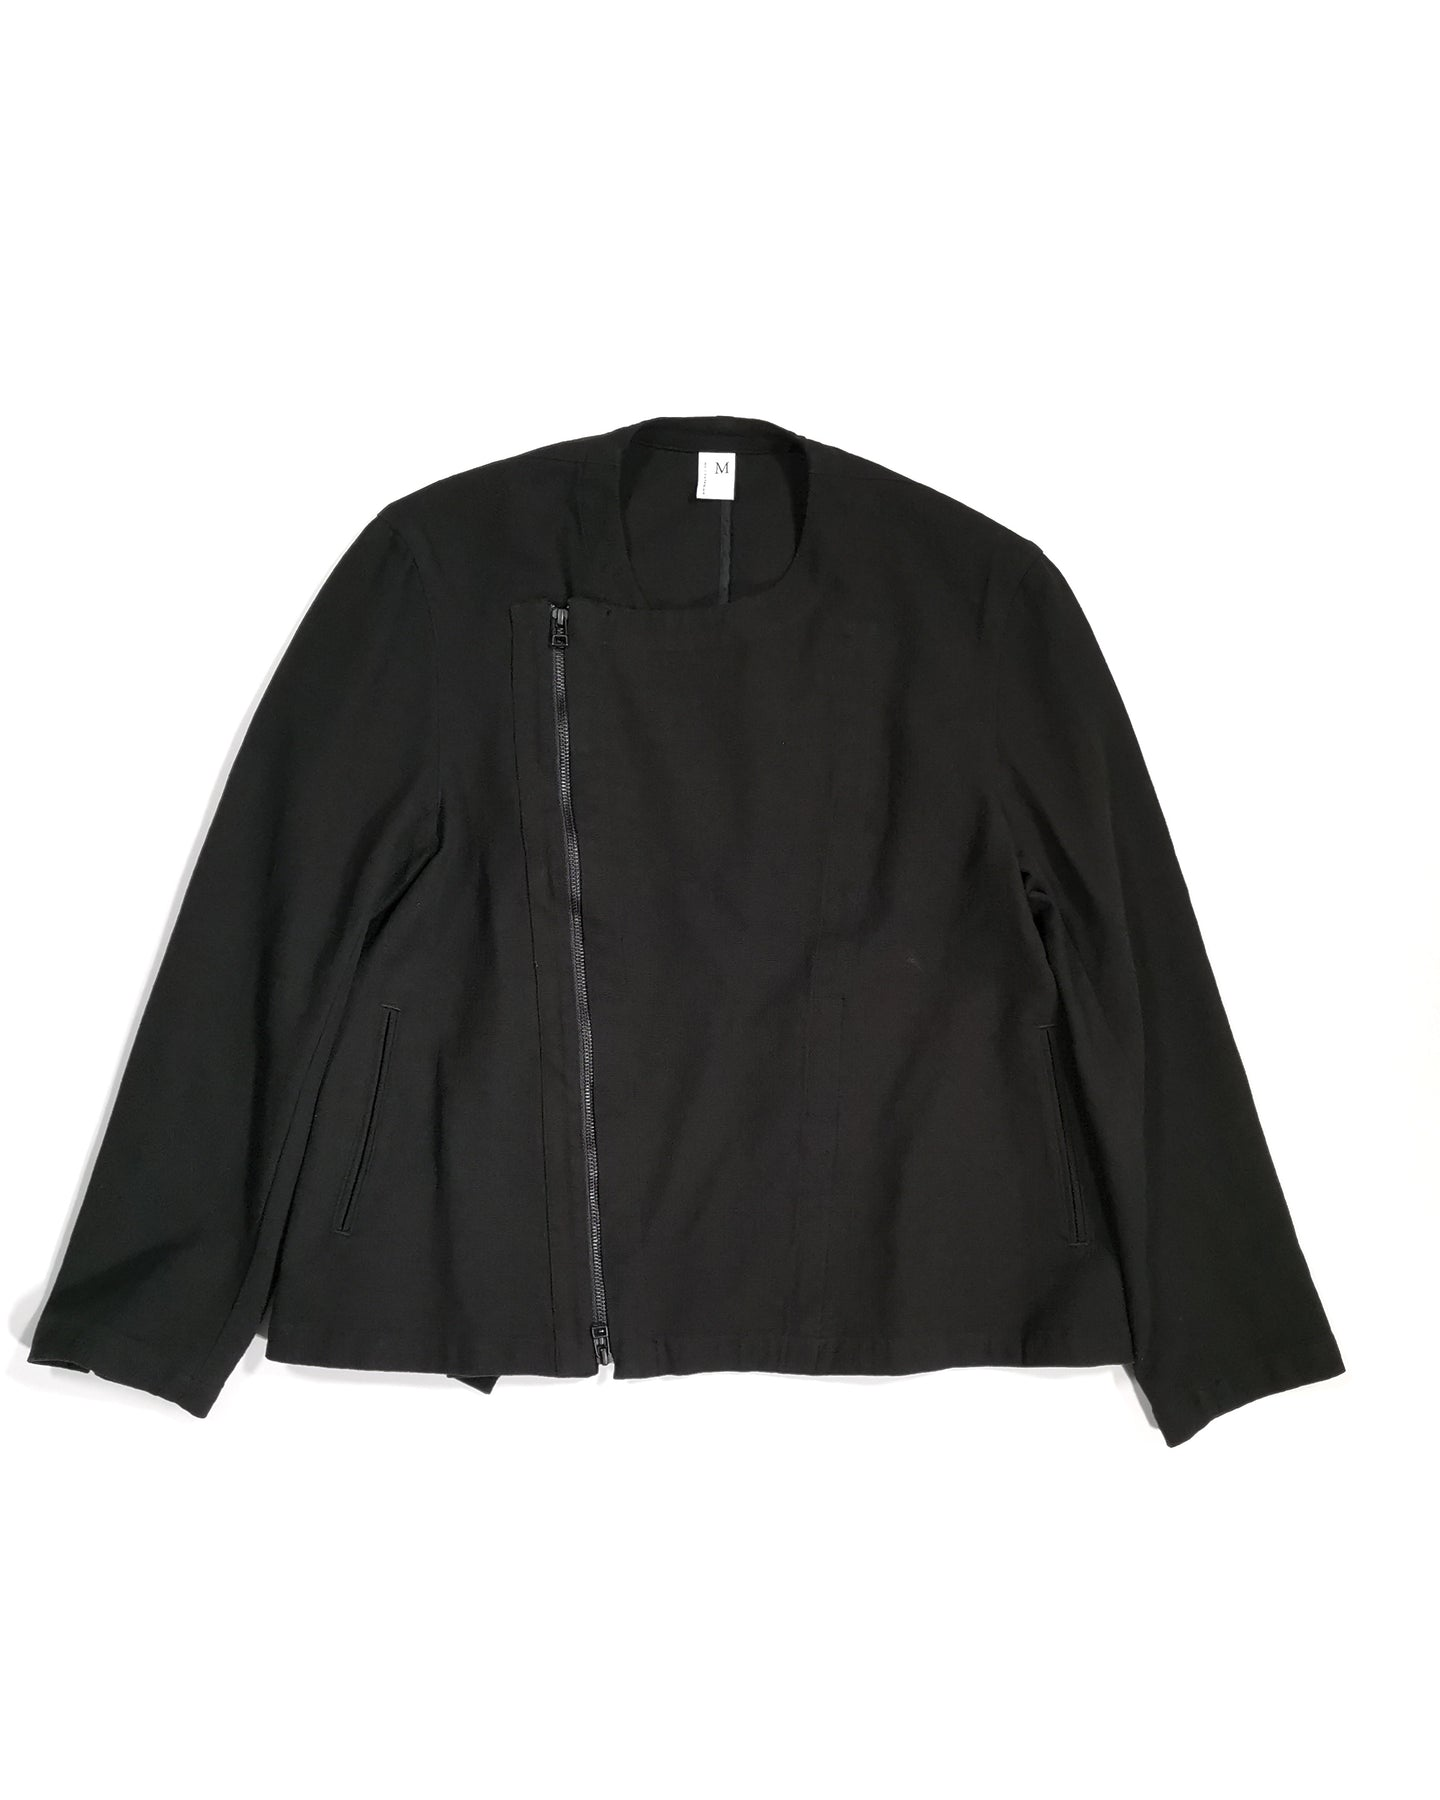 SALT SHRINKAGE COTTON JACKET